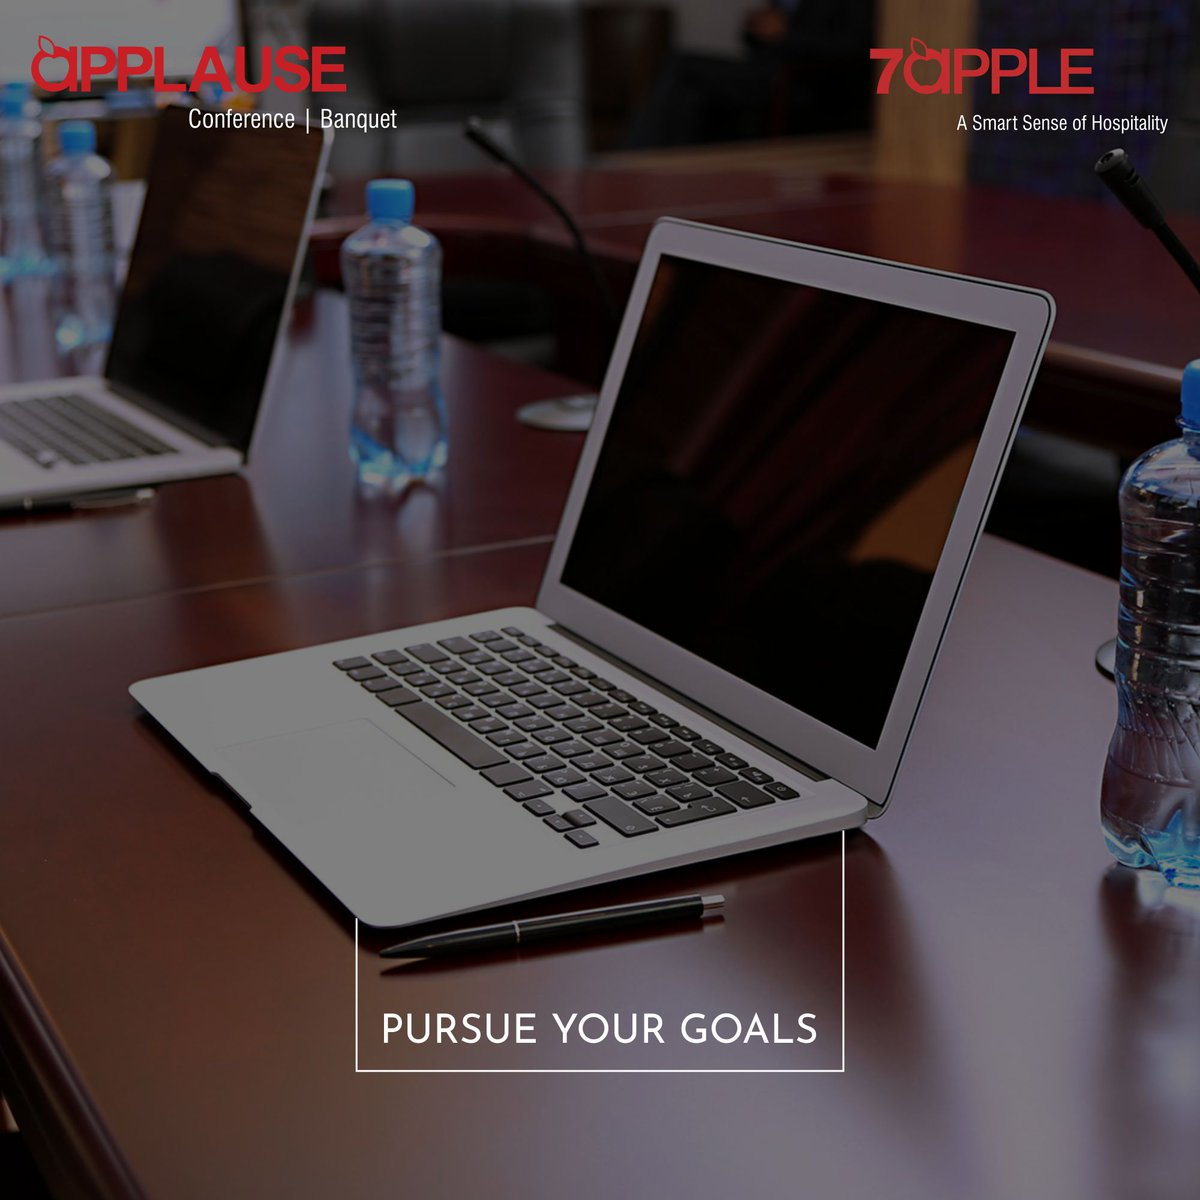 Meeting spaces equipped with all the necessary amenities for your business needs.  #7Applehotels #Meetings #Meetingrooms #Business